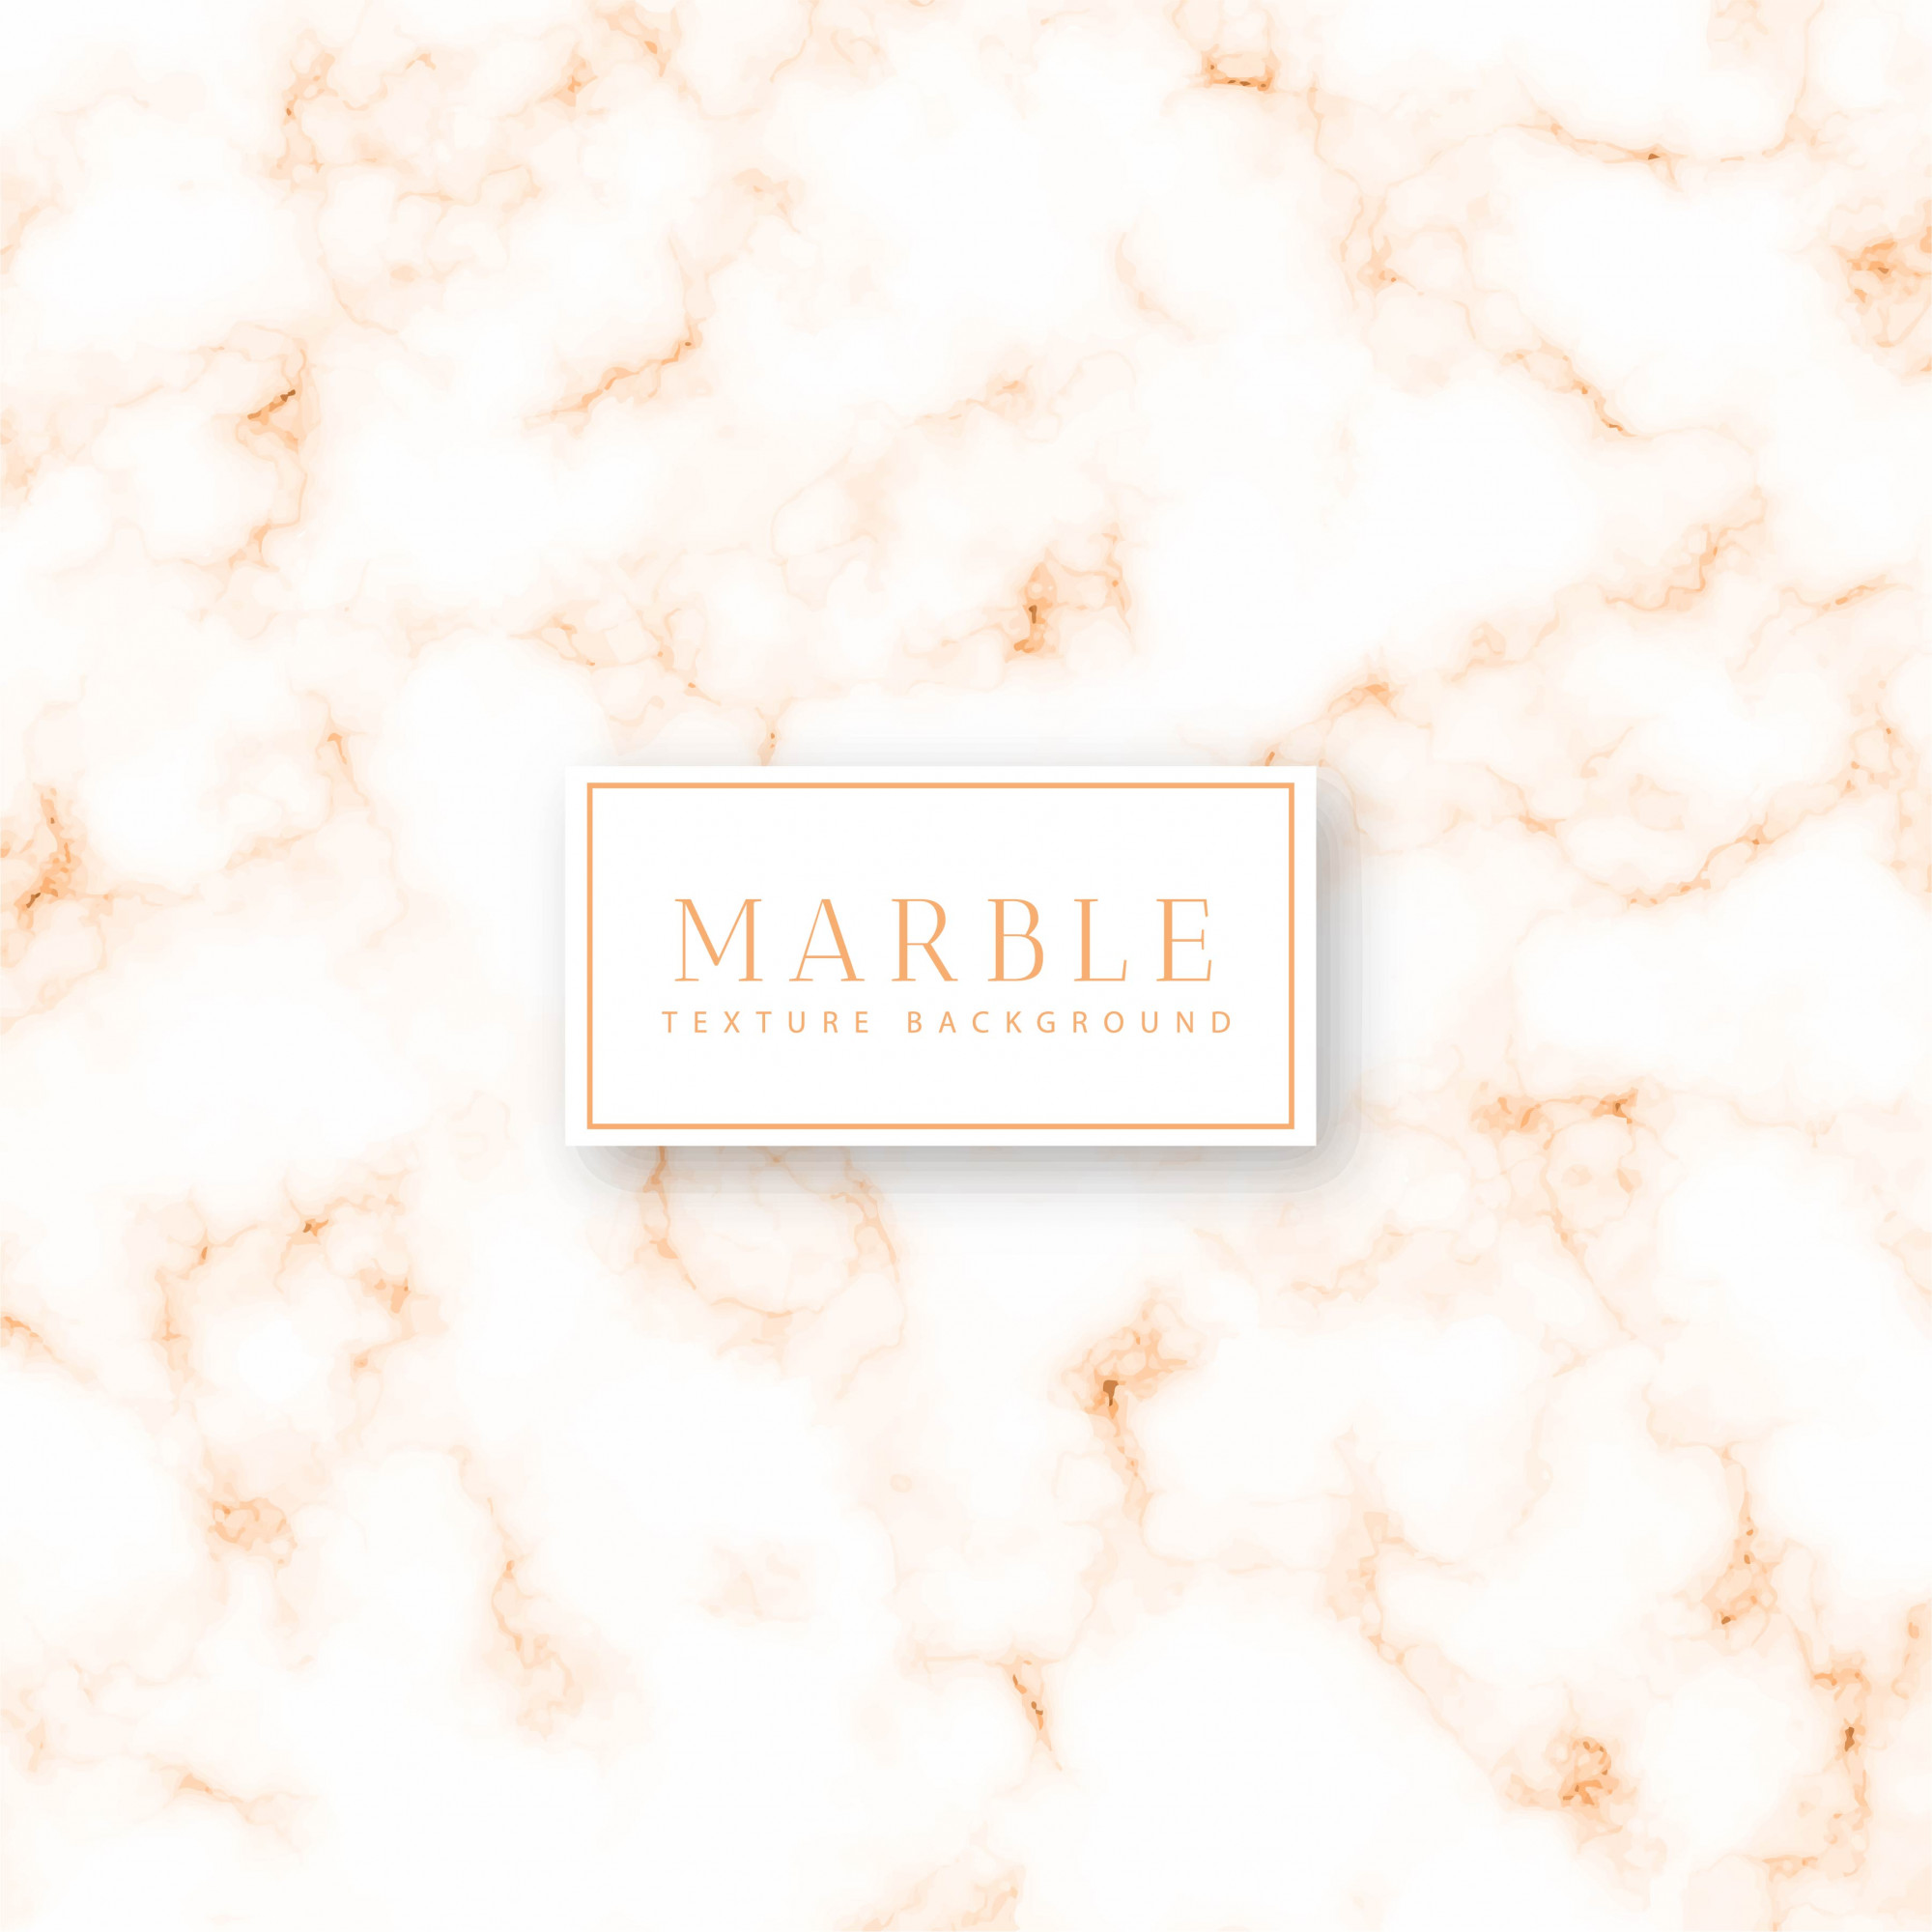 Marble beautiful texture background illustration